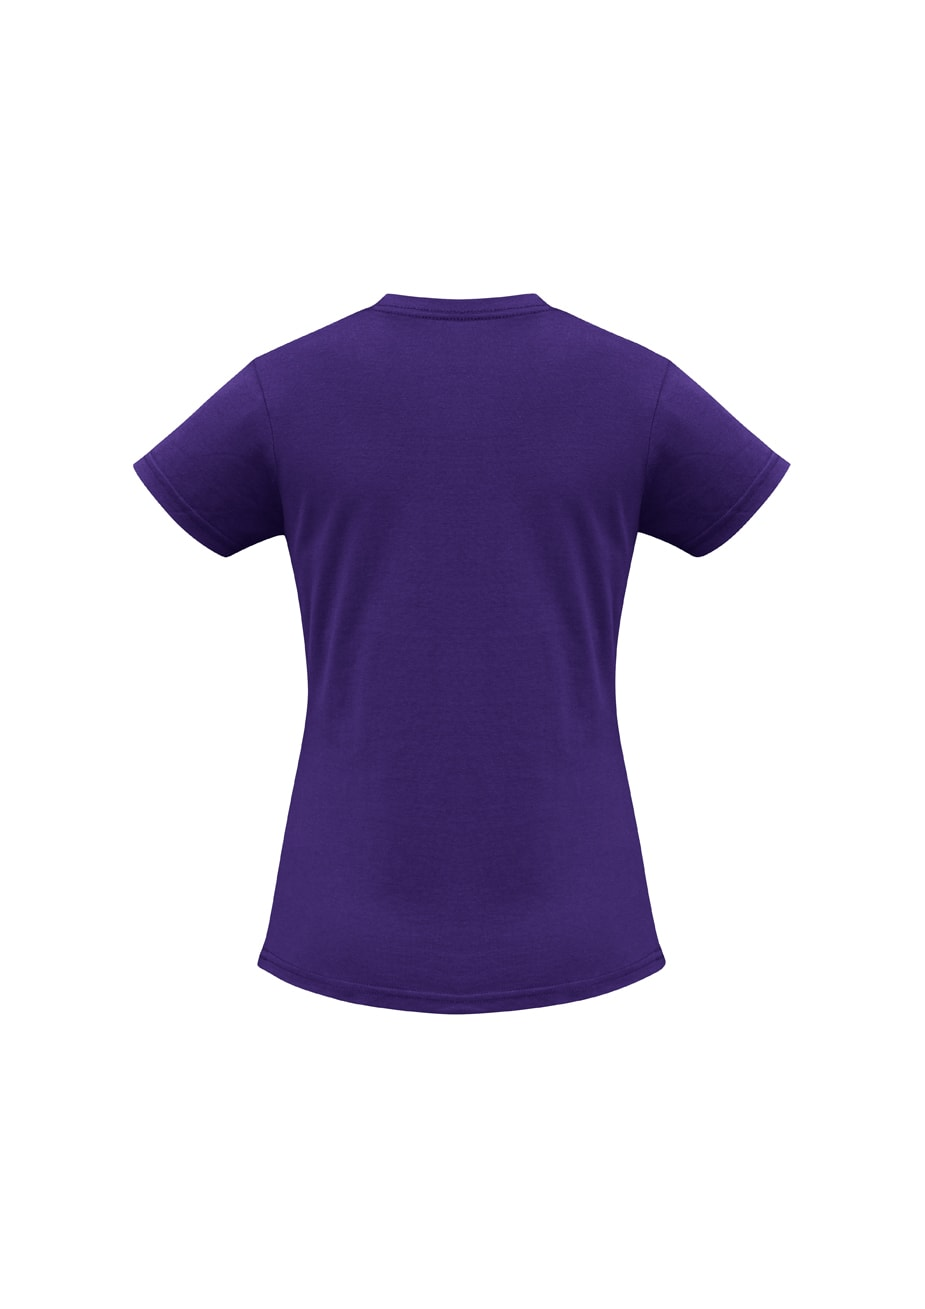 T10022 Purple Back